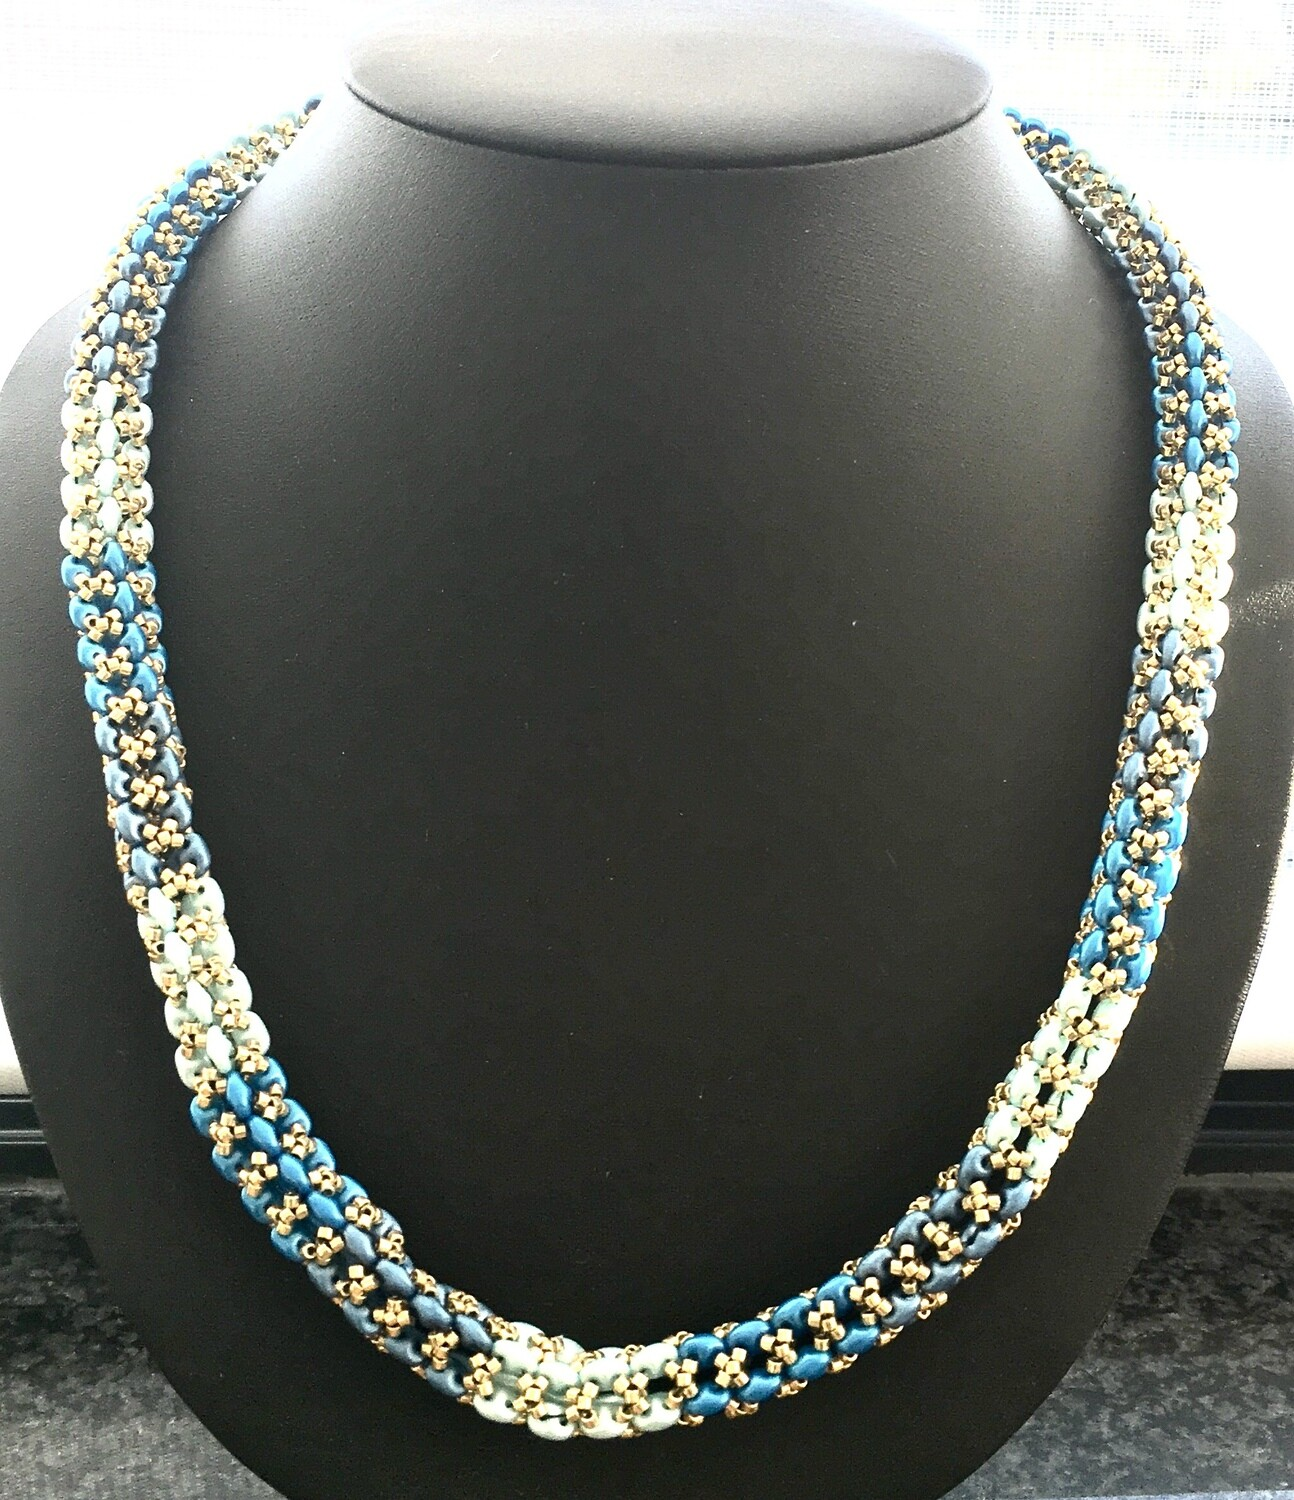 Square weave necklace